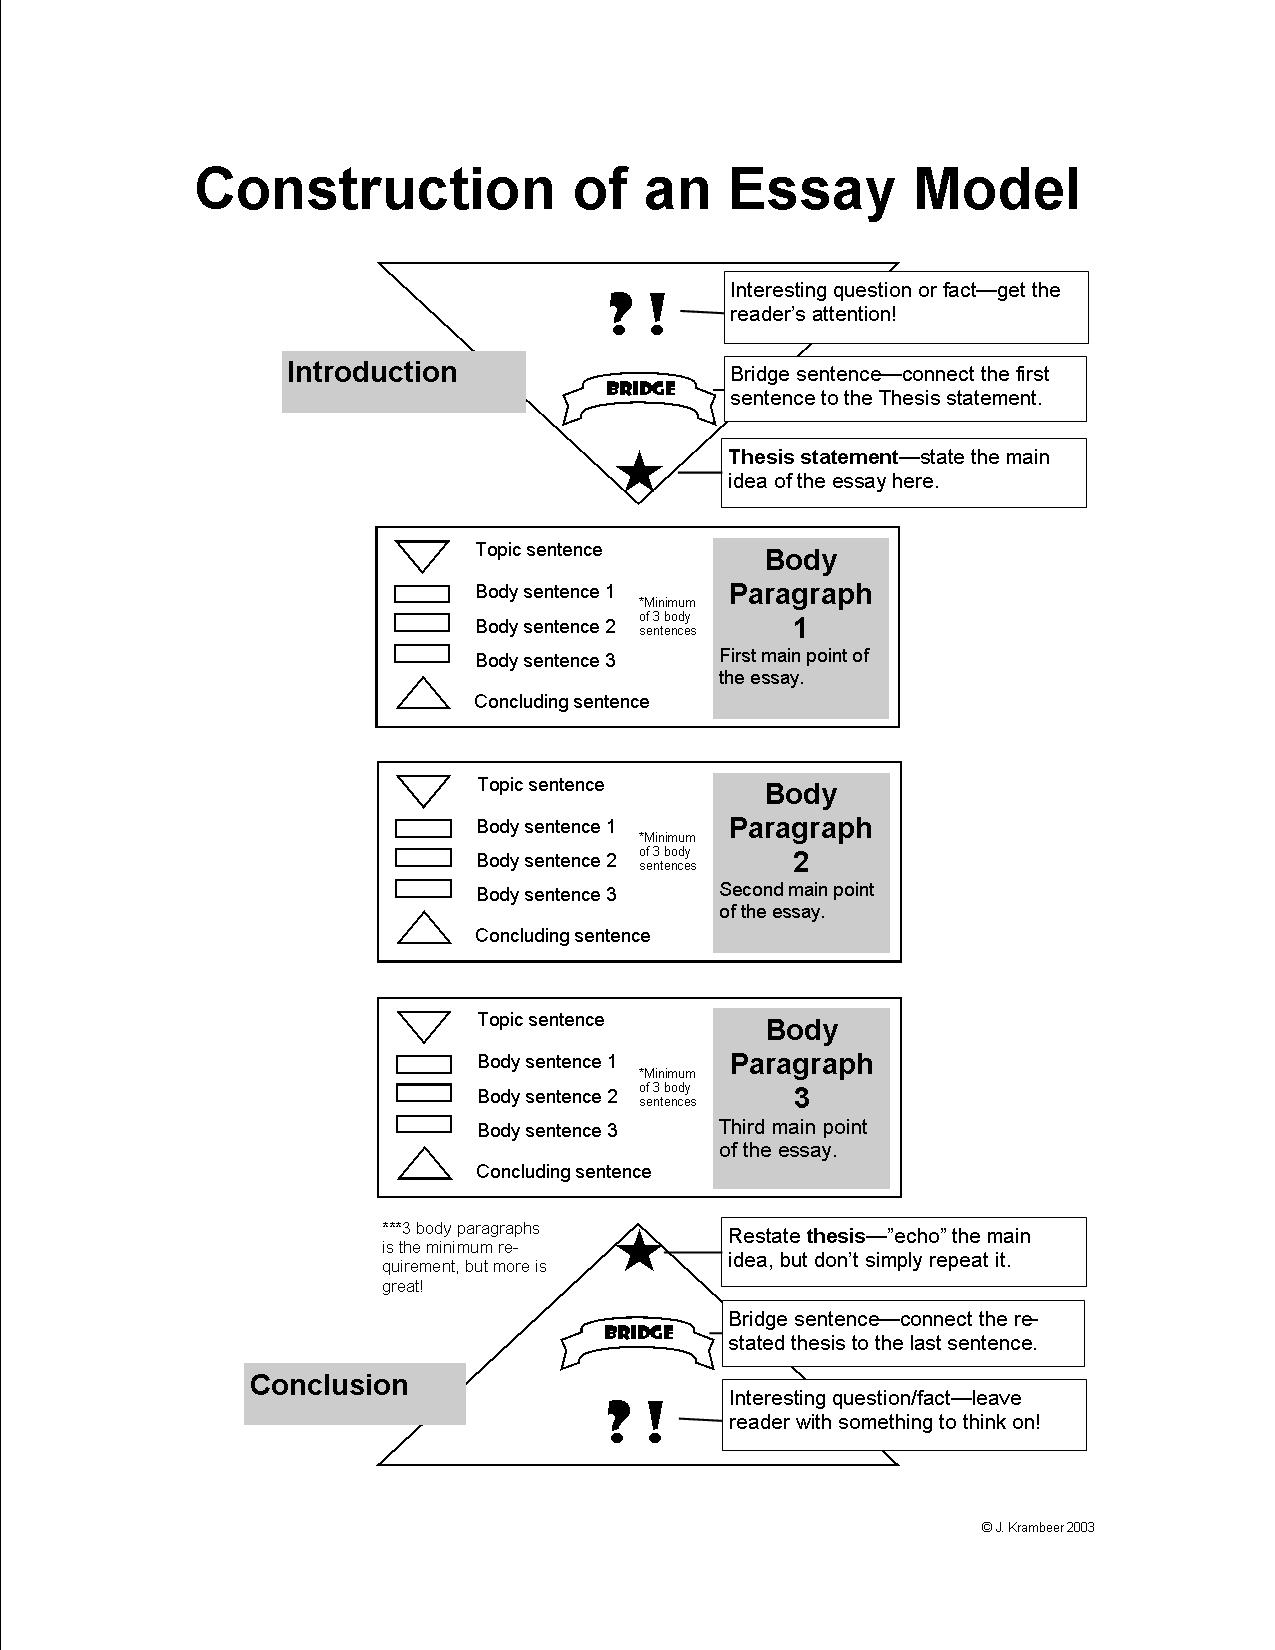 critical thinking books pdf report writing format career buy original essays online essay example spm medea essay the effects of peer pressure essay globalization